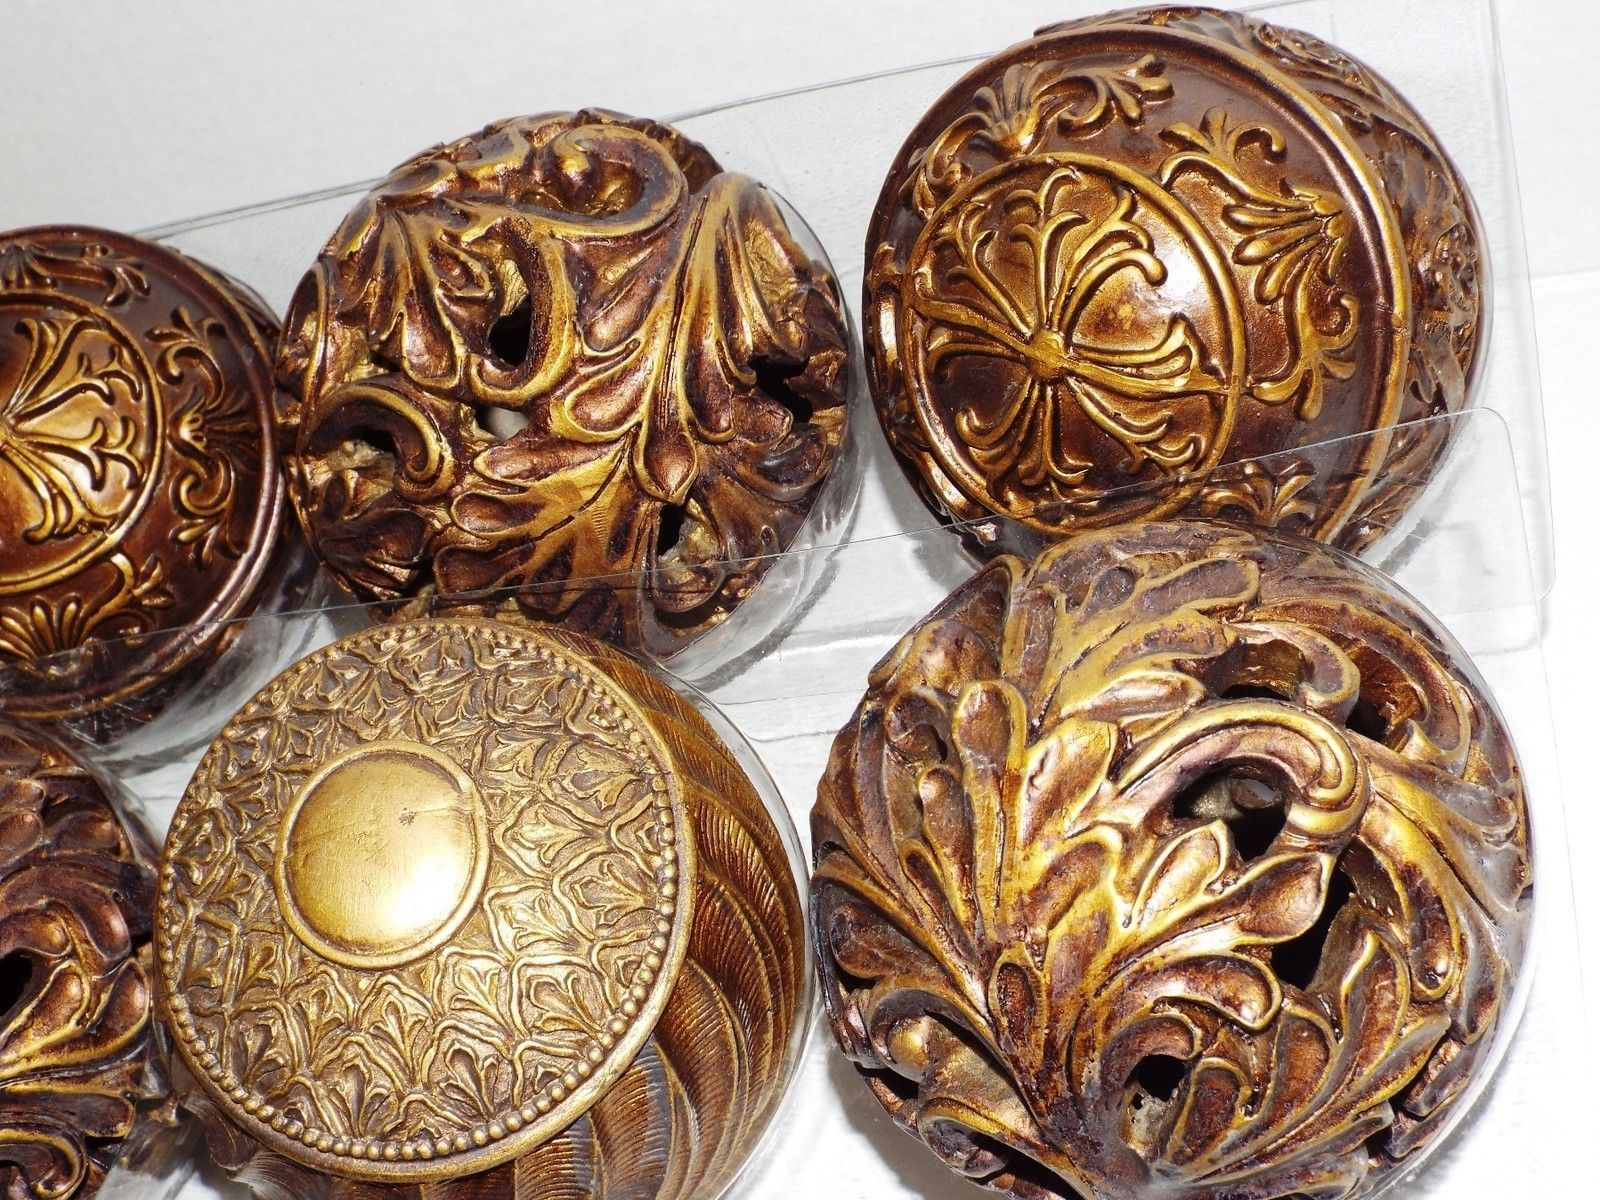 four inch decorative orbs in golden and charming design for table accessories ideas